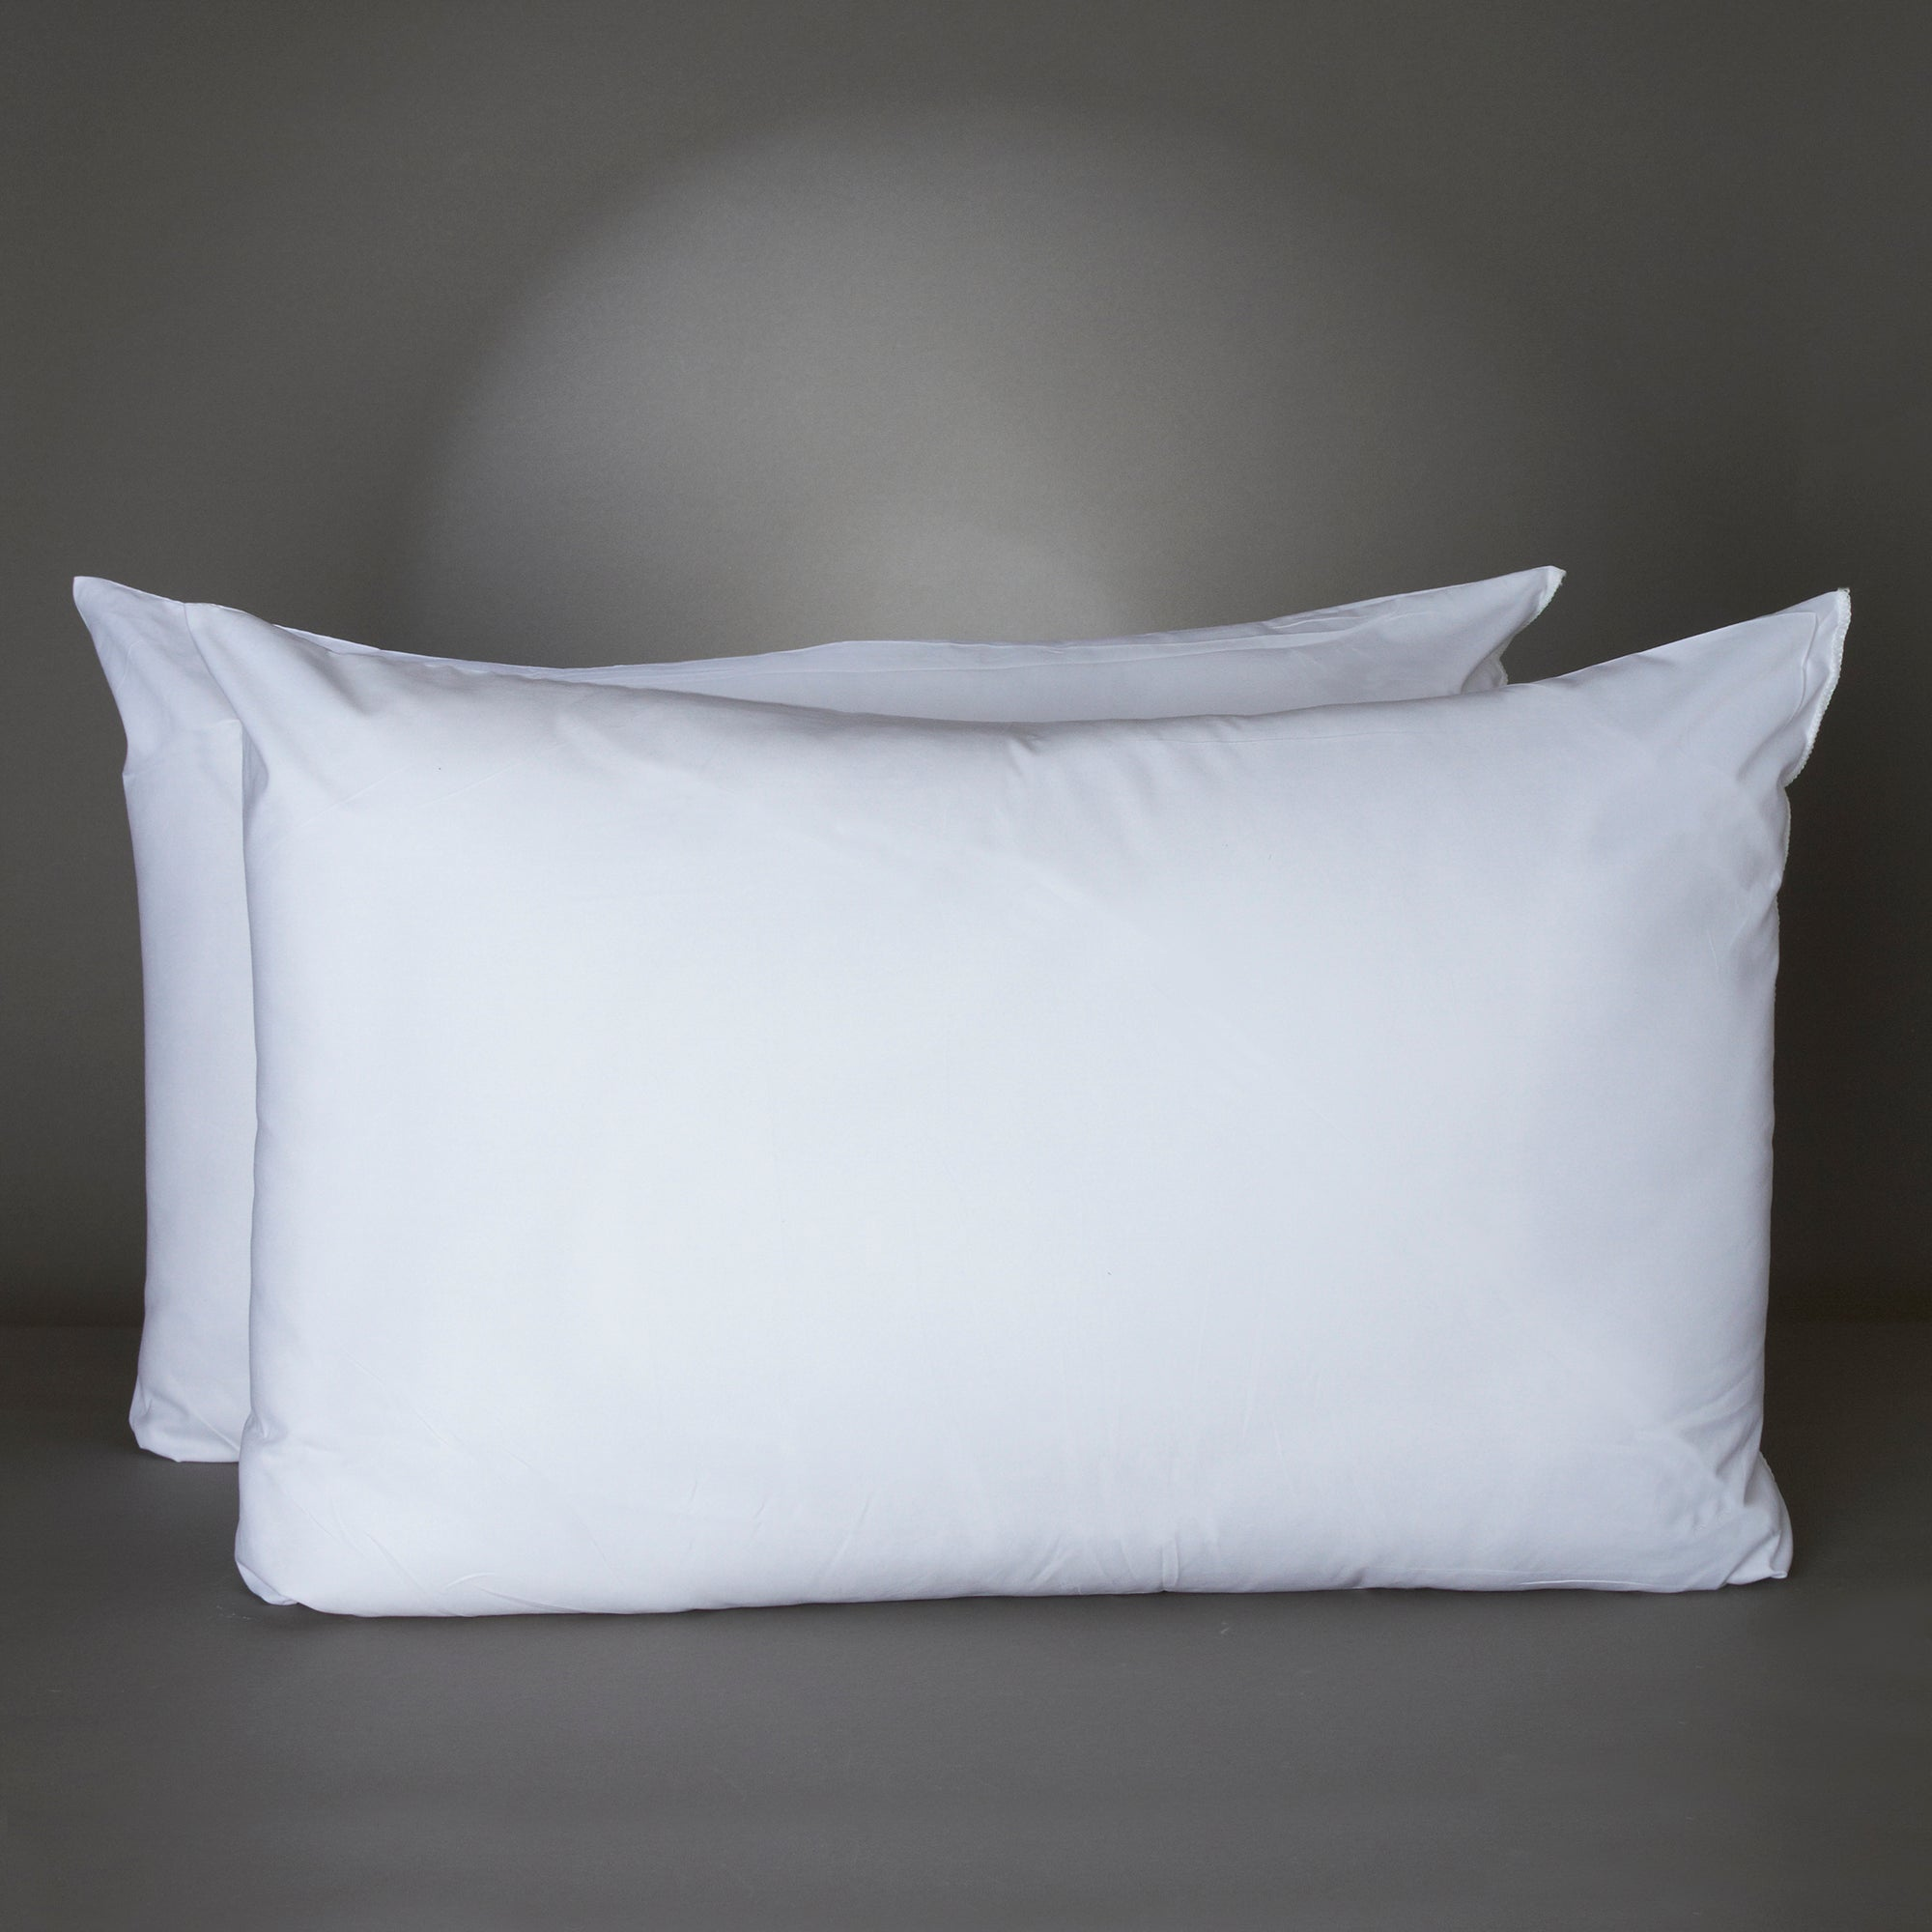 Pair of Microfibre Pillows